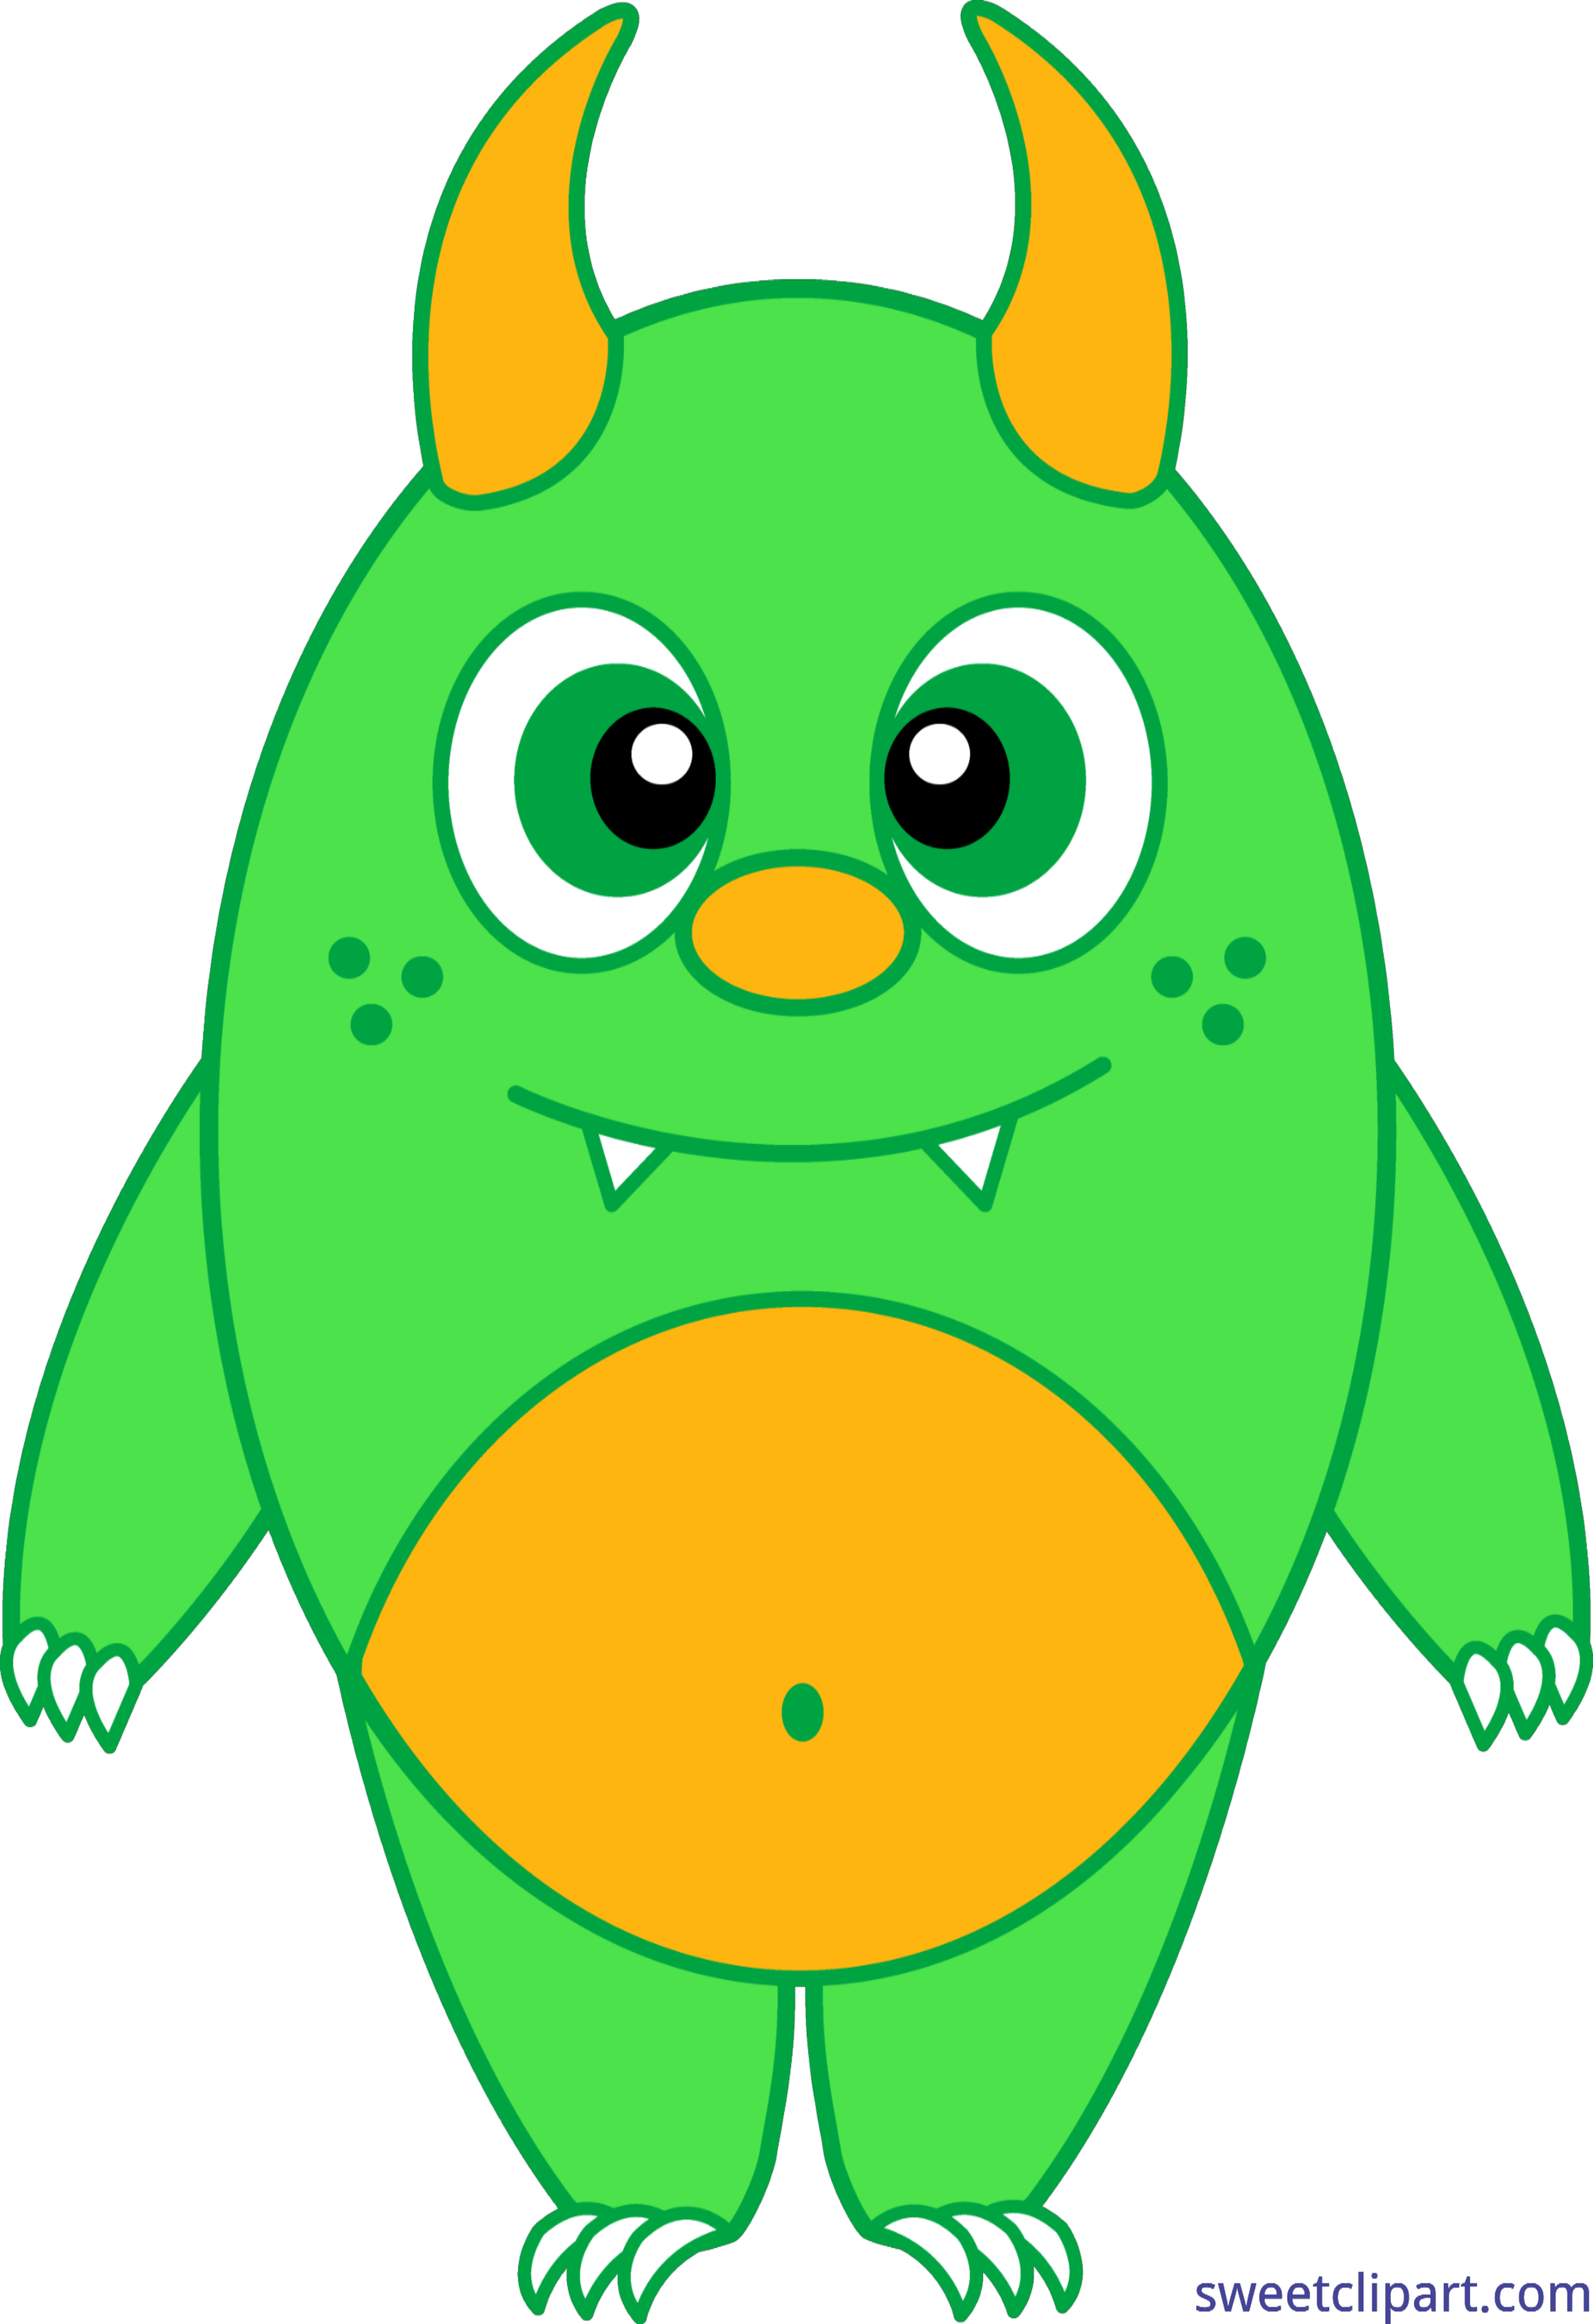 png freeuse download Silly clipart. Monster green clip art